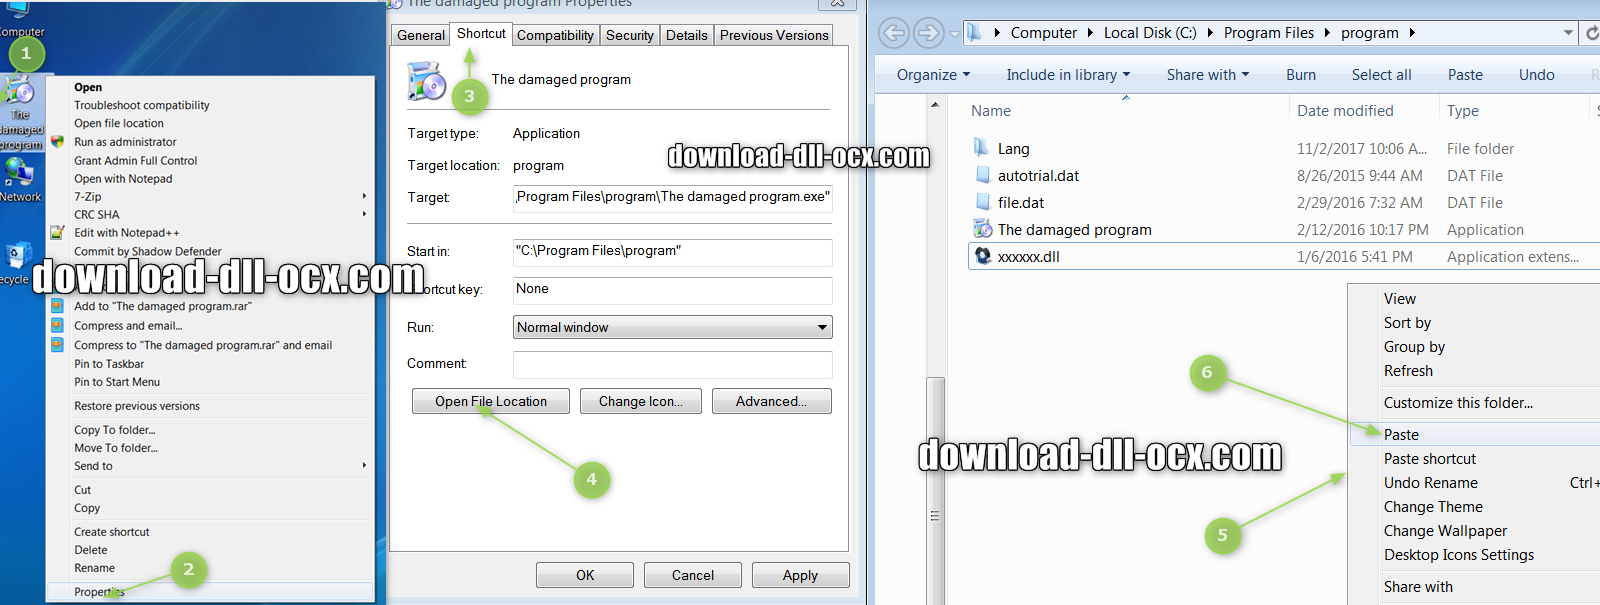 how to install CDLMSO.dll file? for fix missing